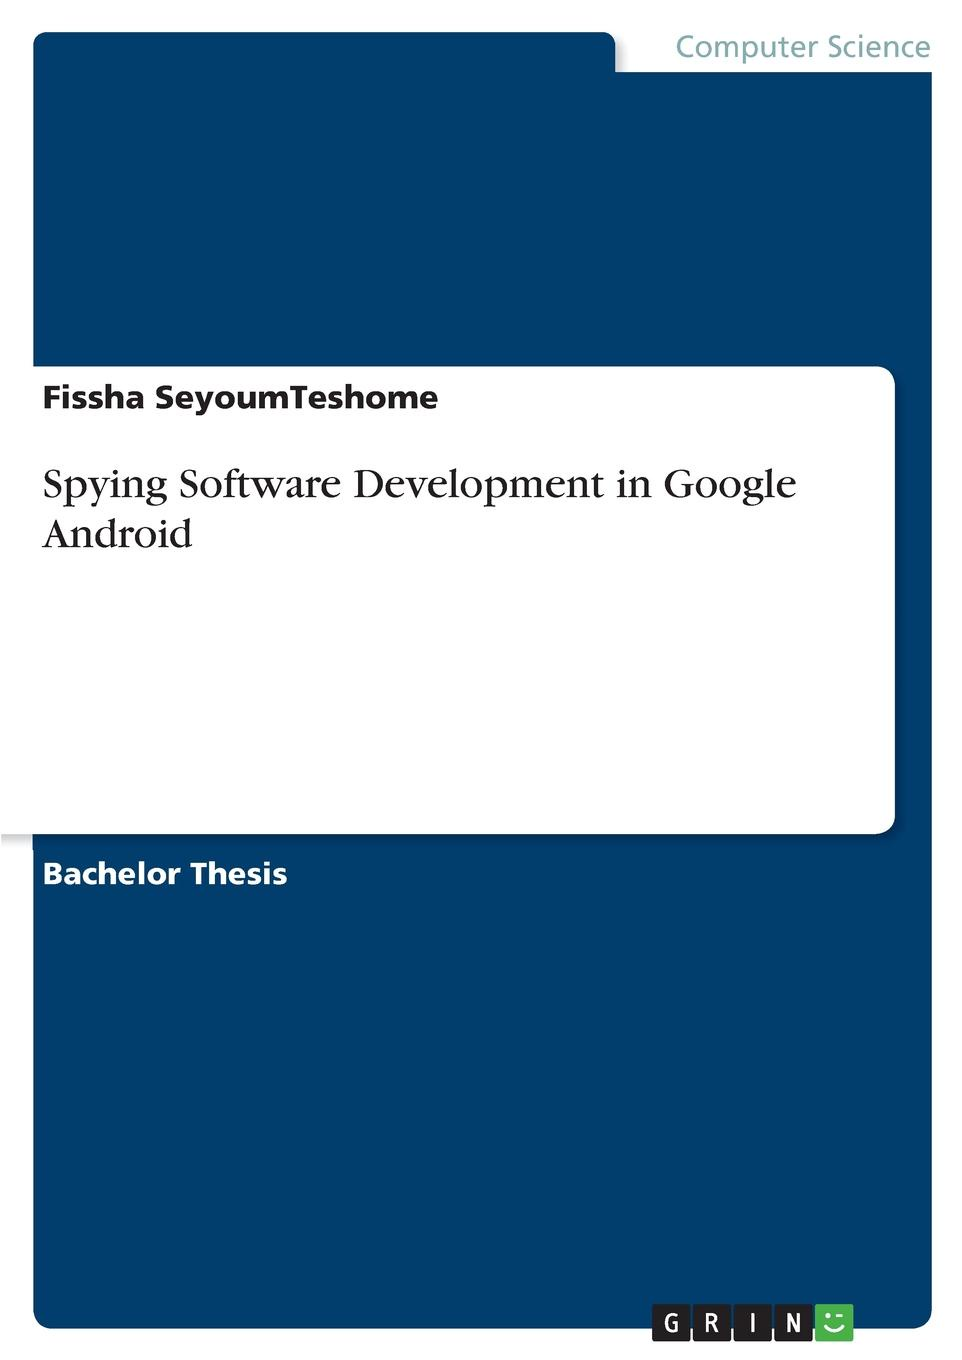 Fissha SeyoumTeshome Spying Software Development in Google Android